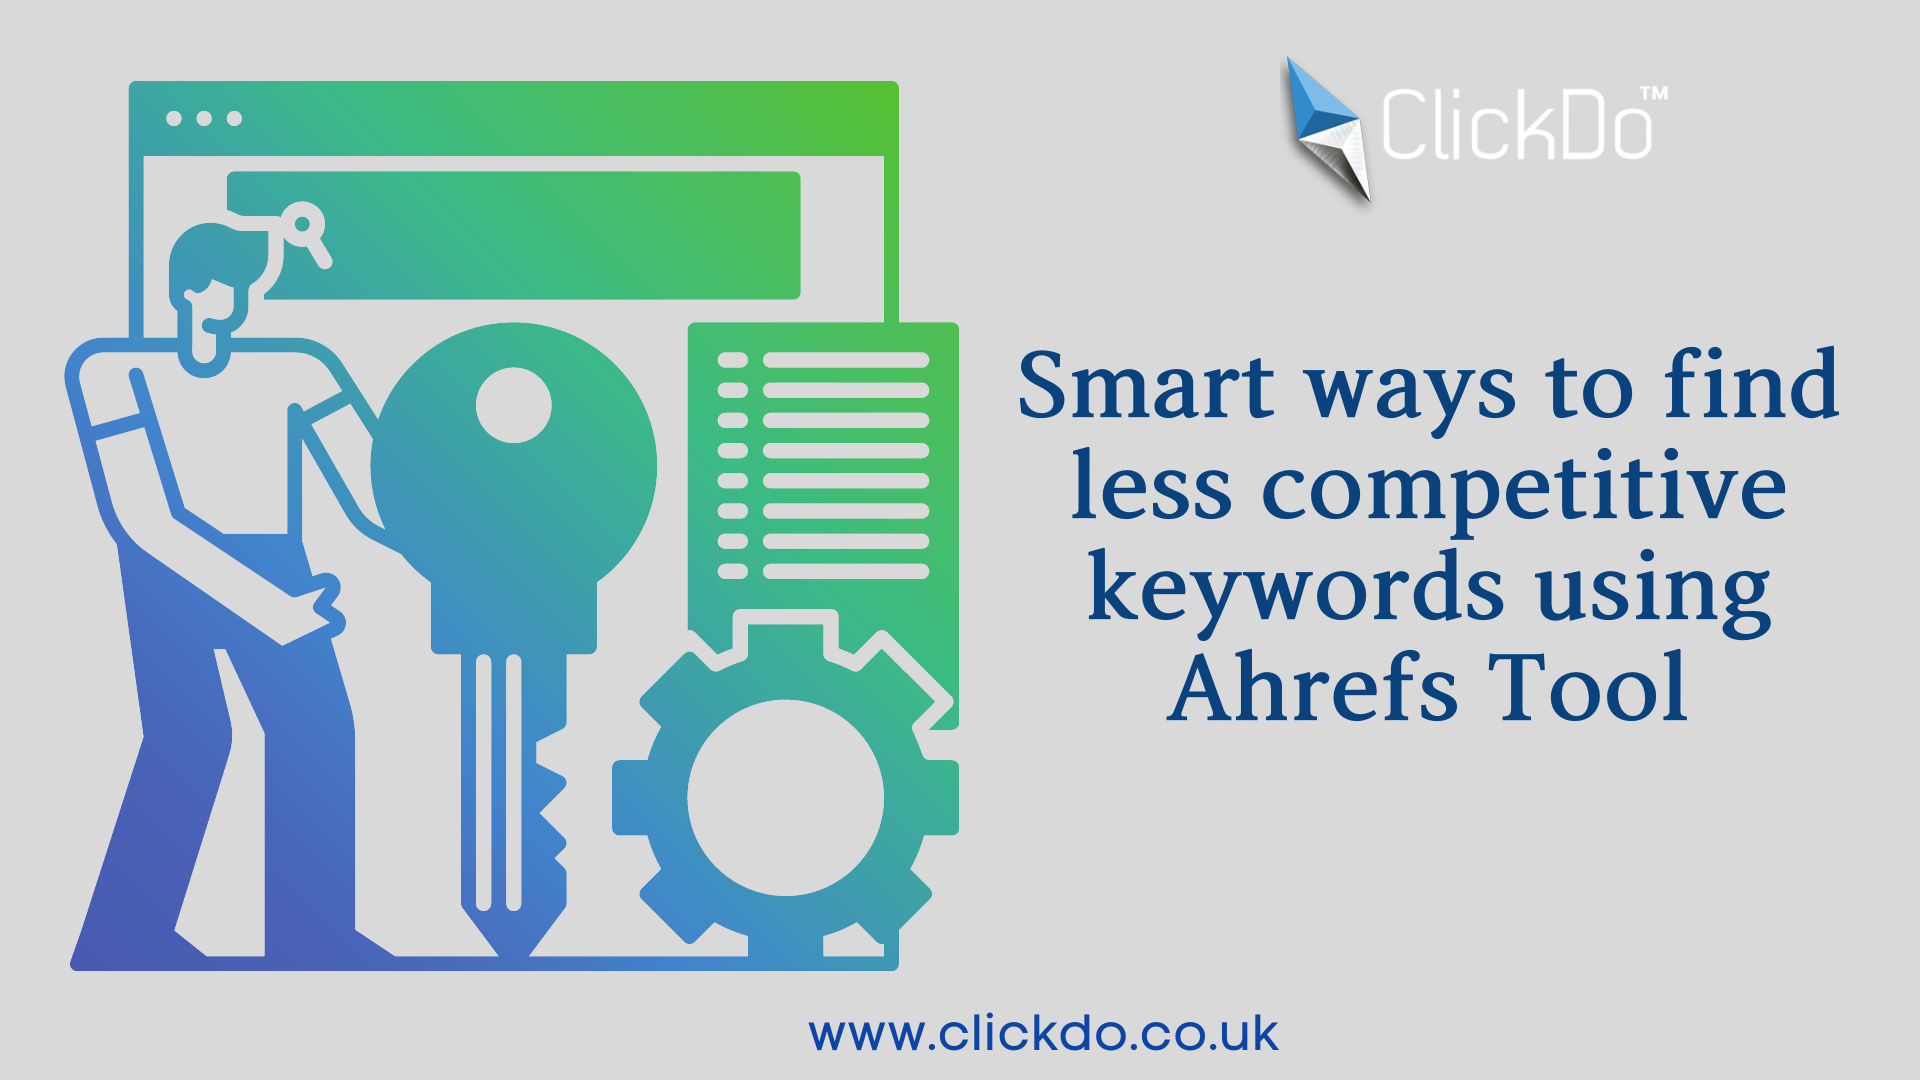 Smart ways to find less competitive keywords using Ahrefs Tool